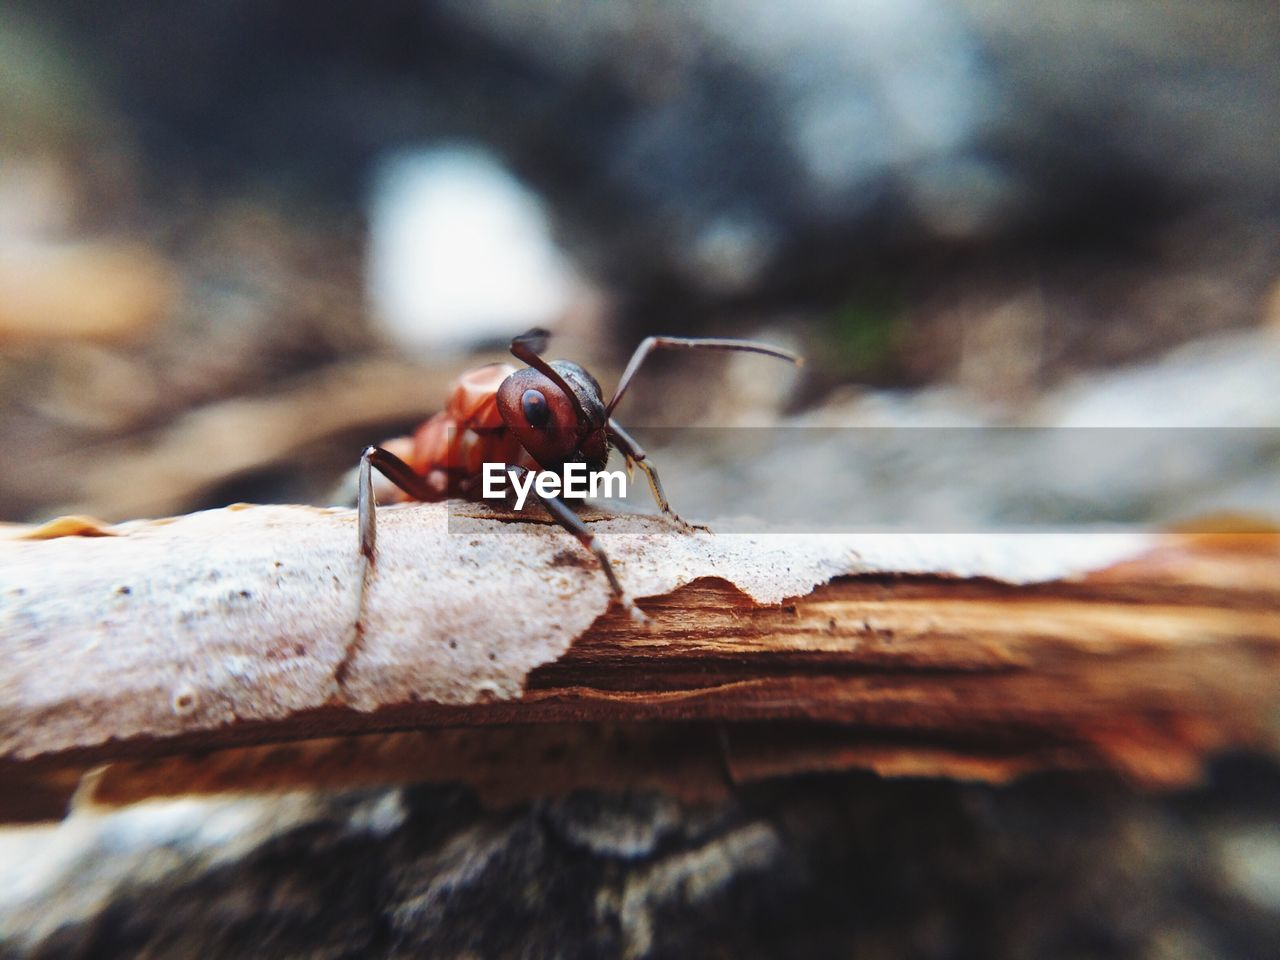 Close-Up Of Fire Ant On Wood